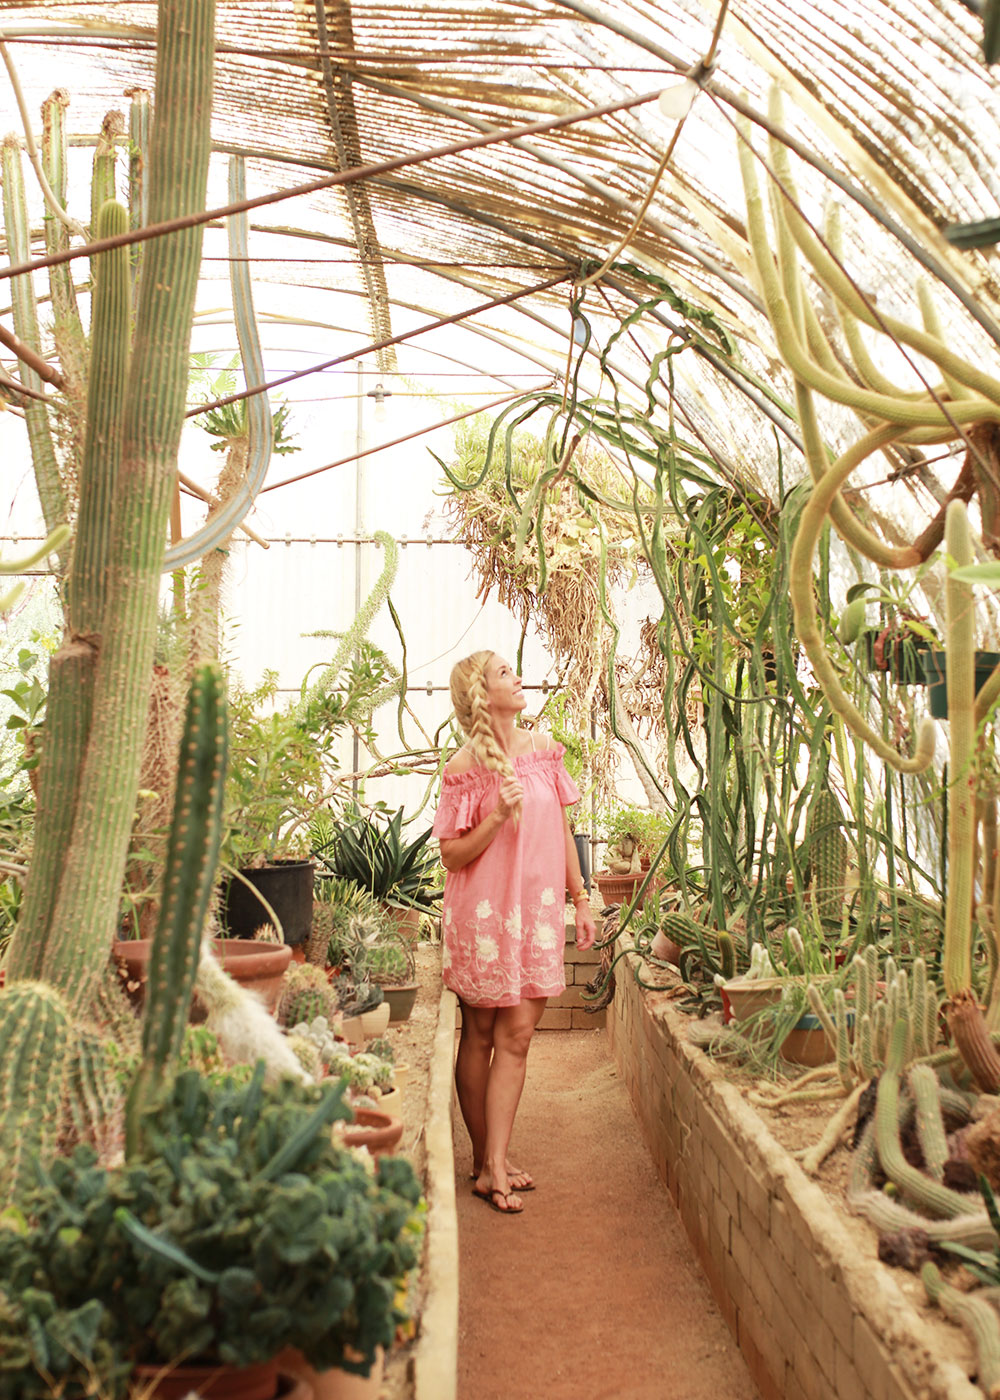 exploring the cactus gardens of palm springs, california on our girls trip | thelovedesignedlife.com